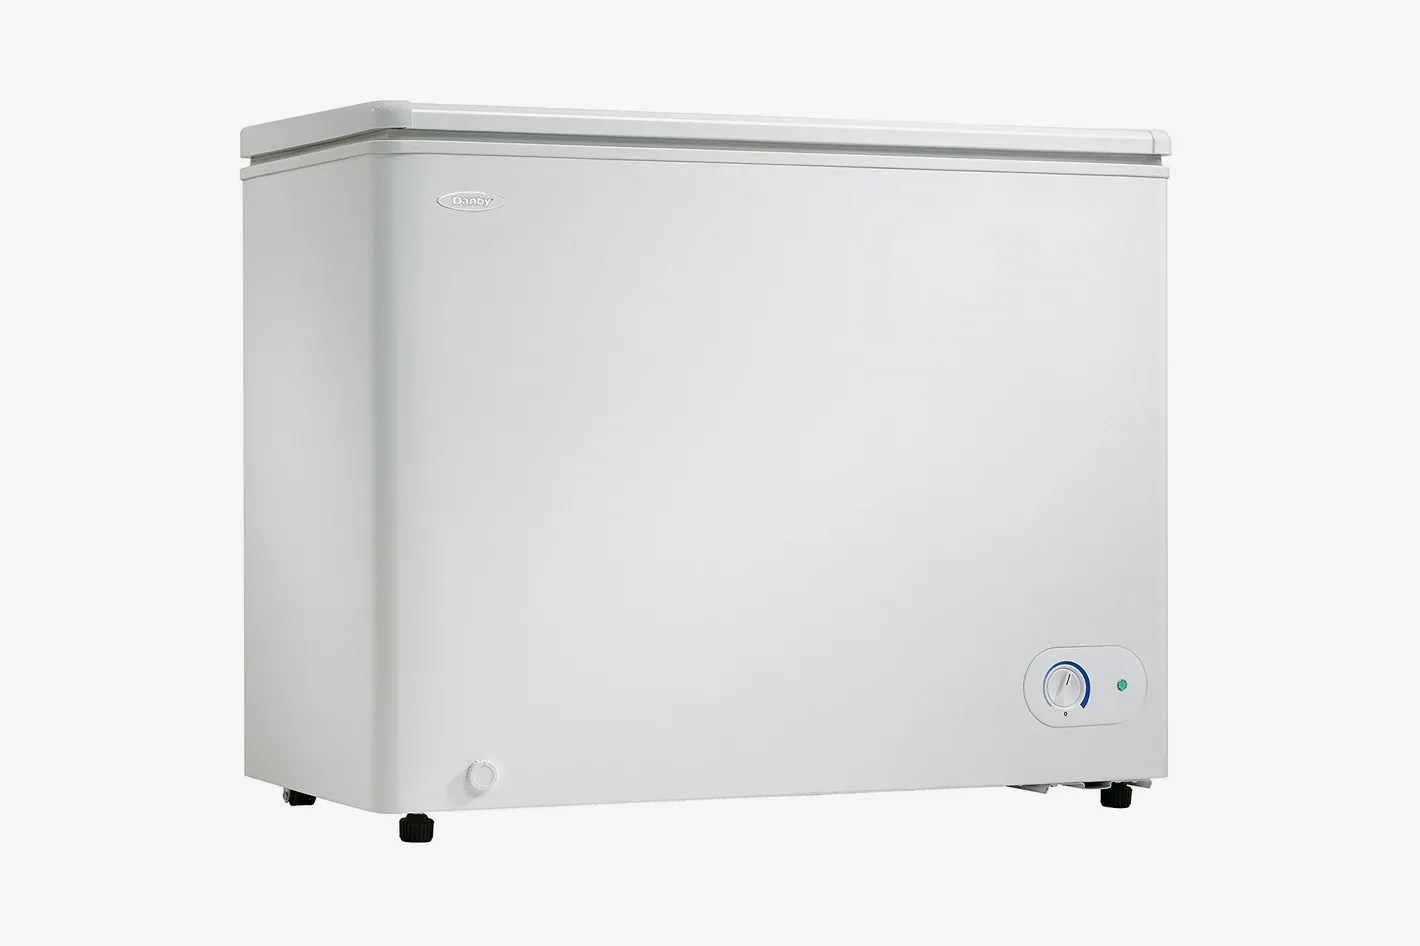 Small Stand Up Freezer Danby 7 2 Cubic Feet Chest Freezer